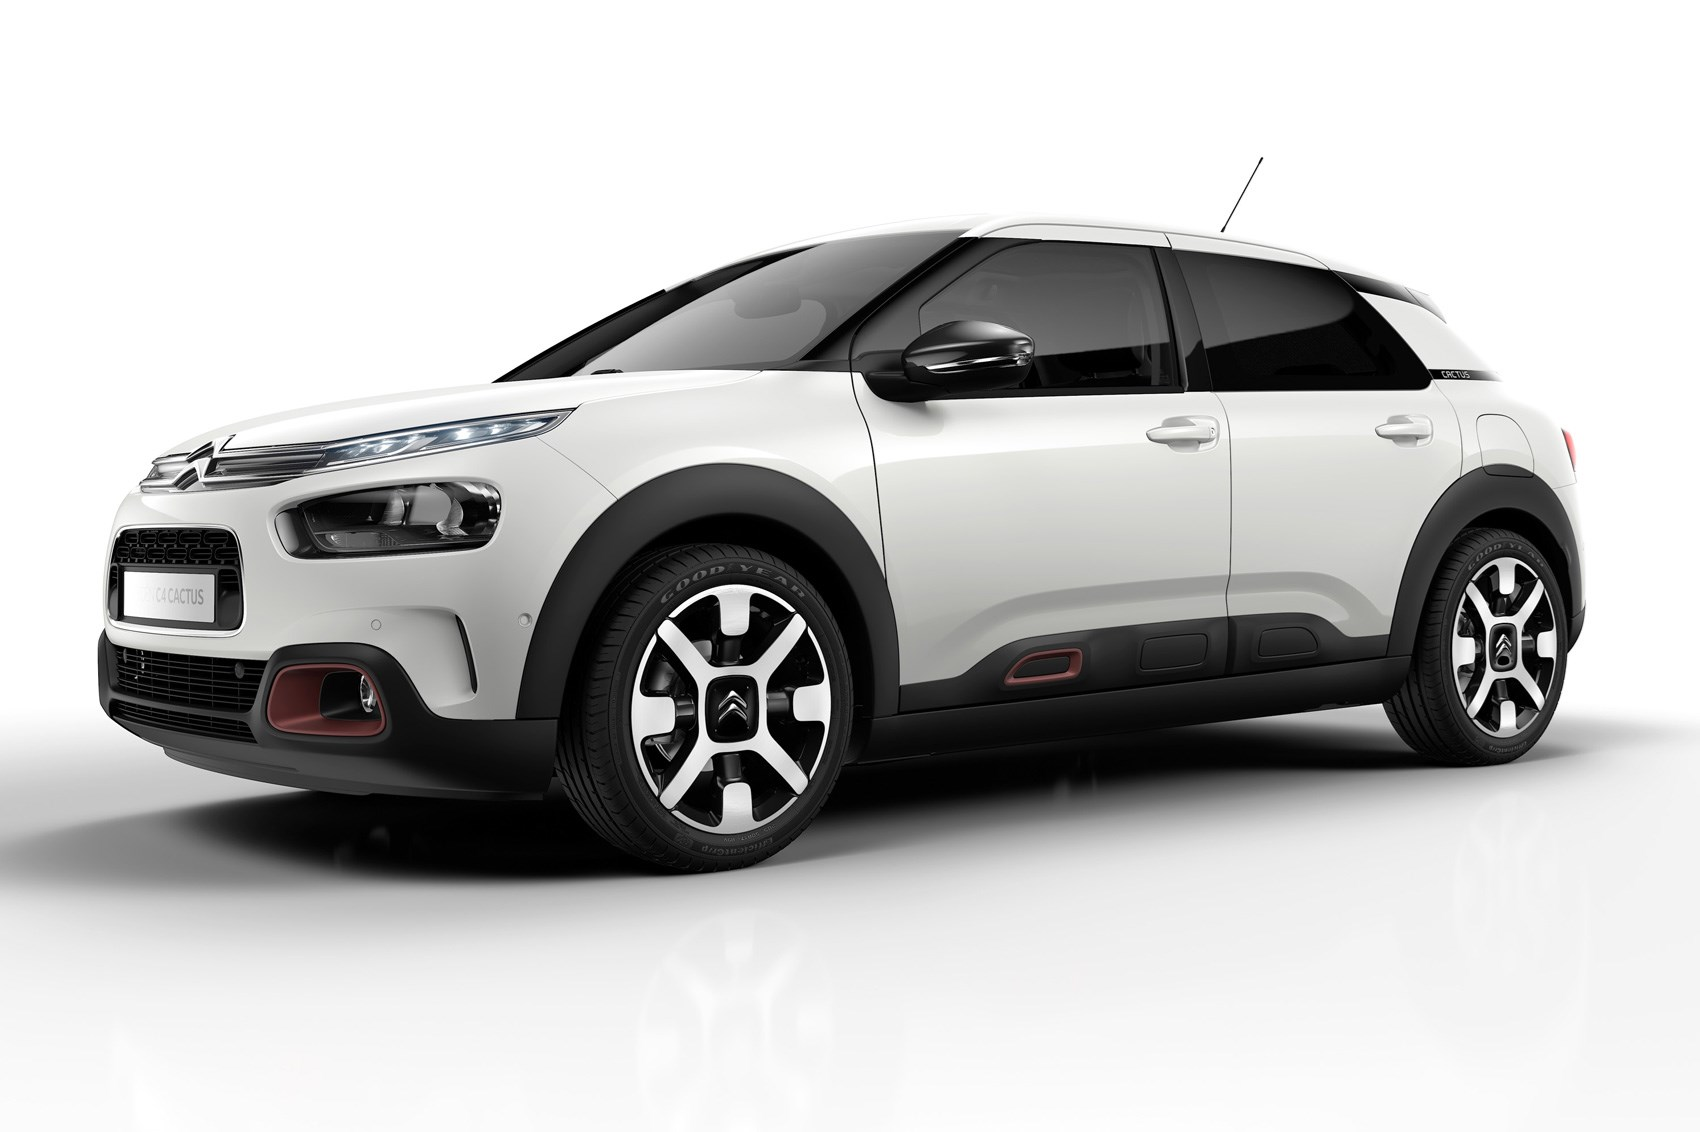 citroen c4 cactus facelifted airbumps out comfier ride. Black Bedroom Furniture Sets. Home Design Ideas